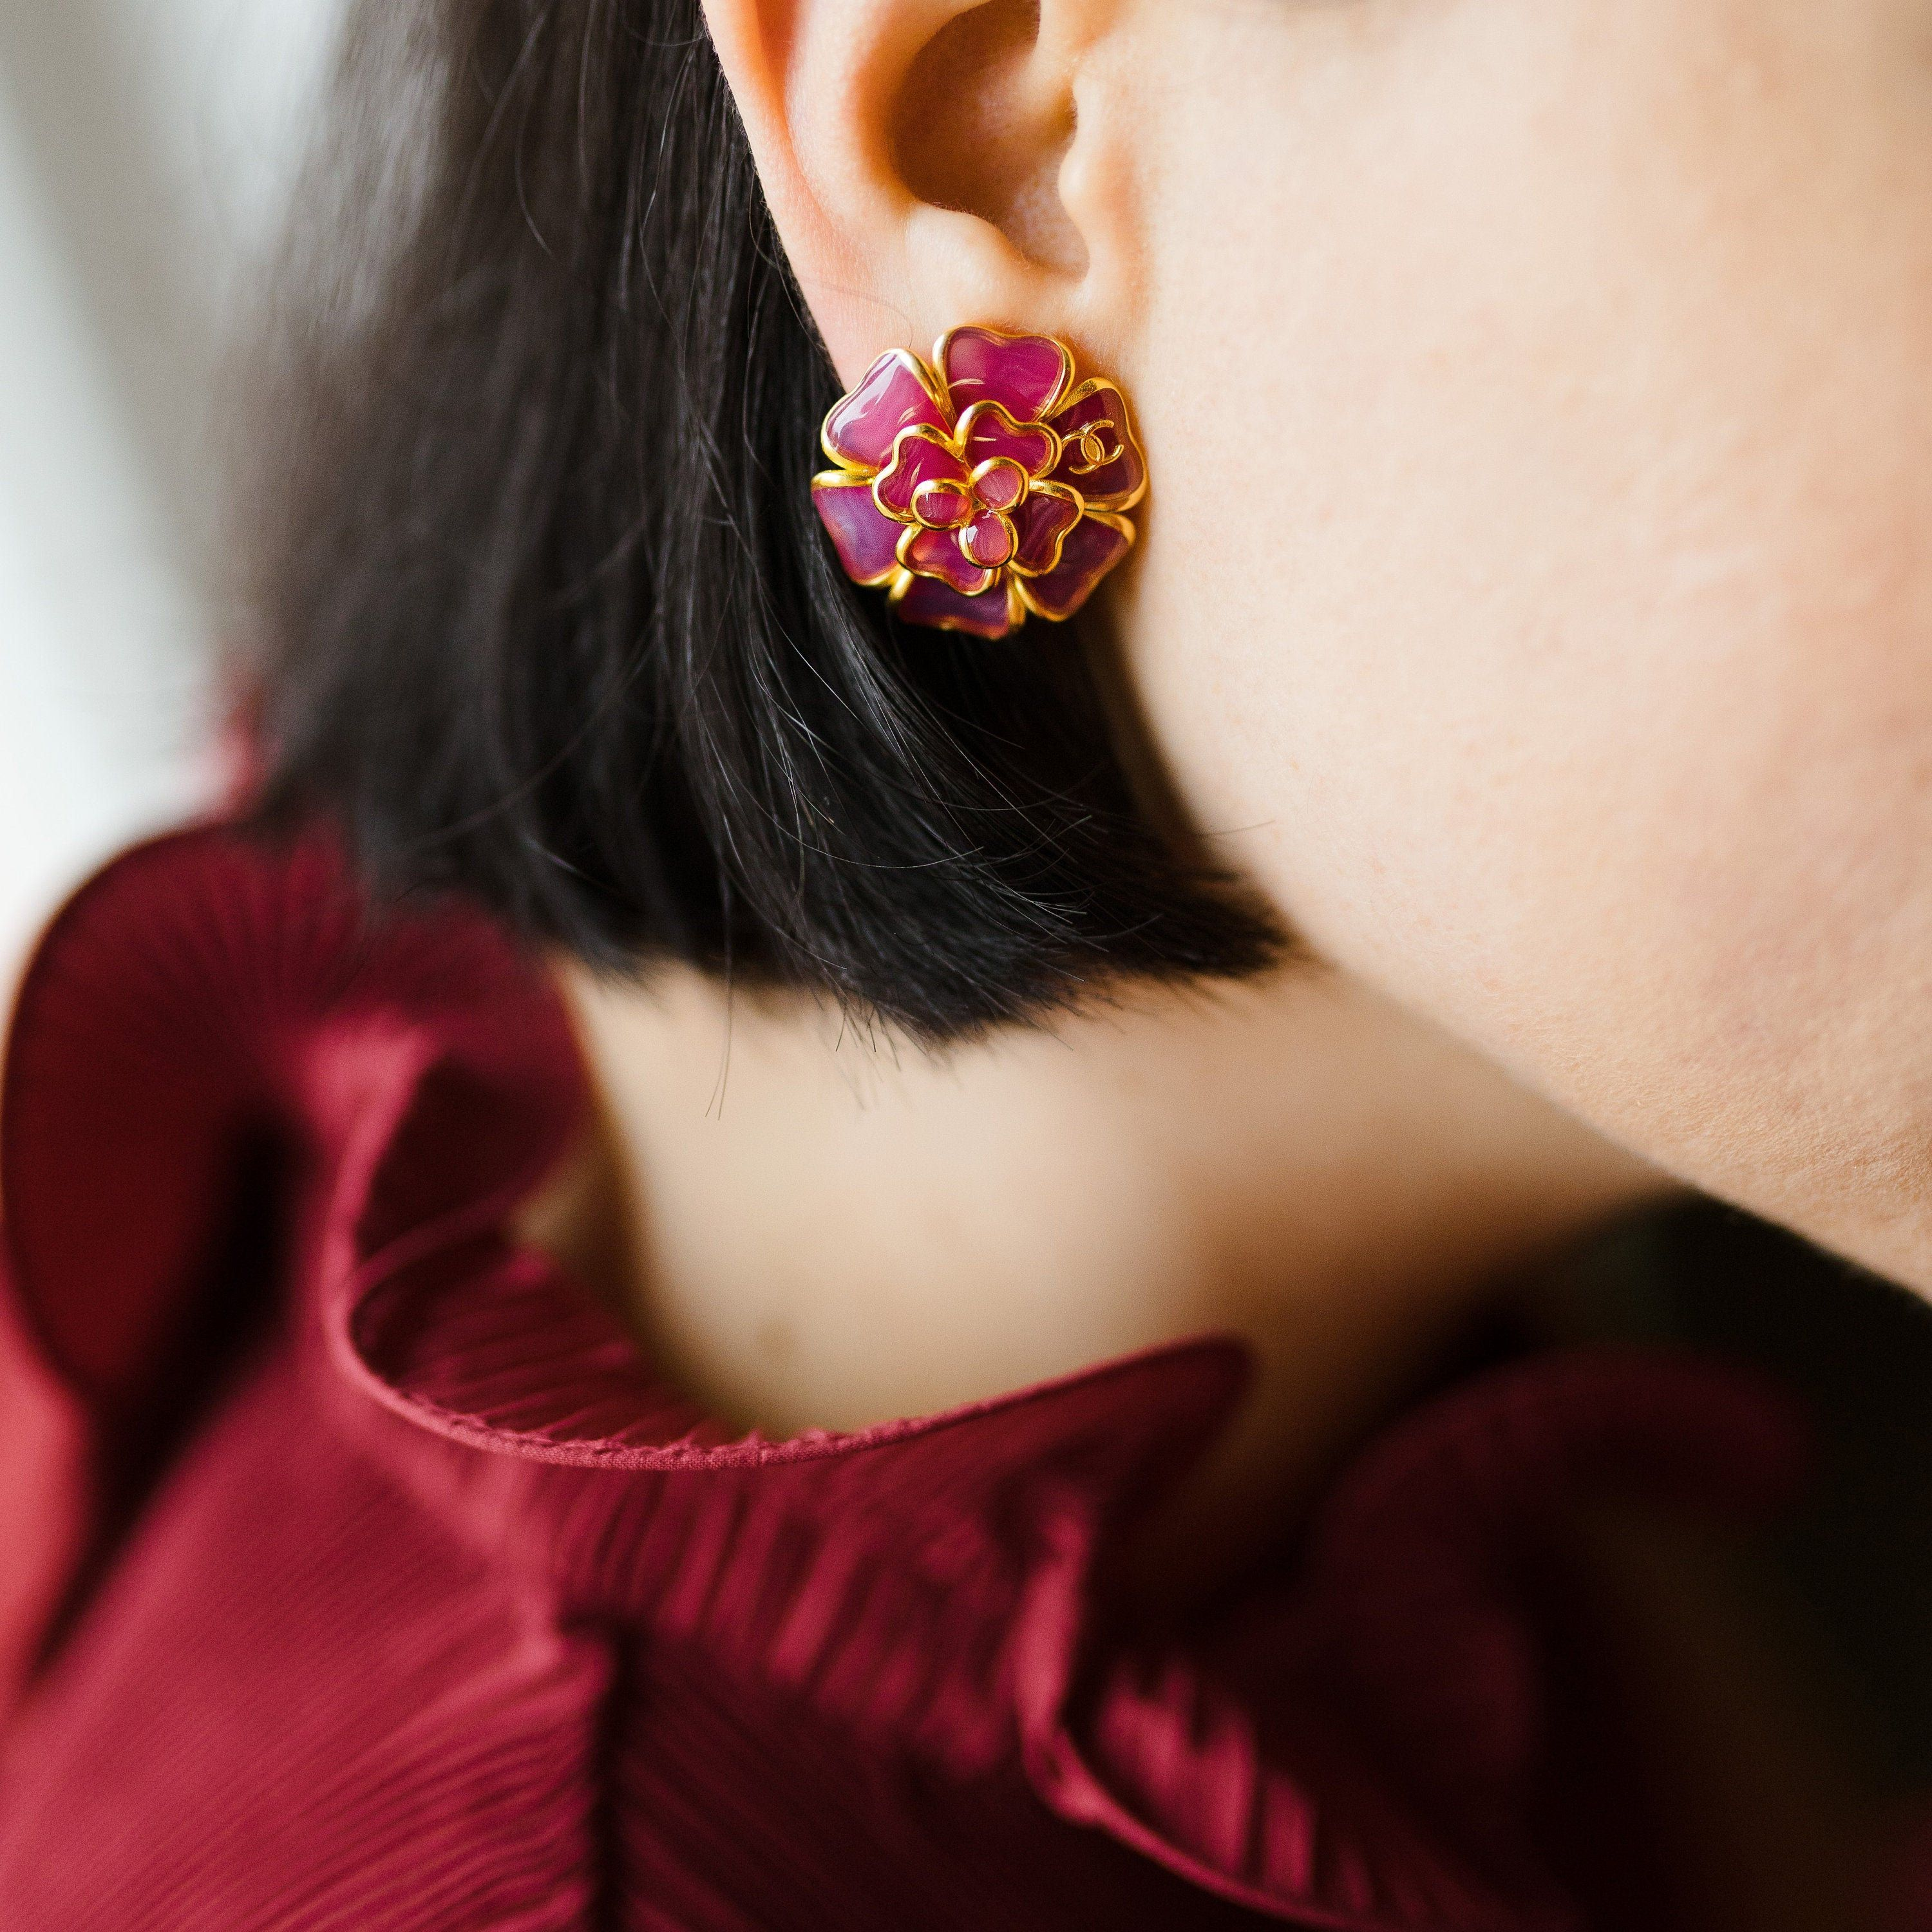 Very Rare Chanel Camellia Earrings In Berry Red 1994 Autumn Chanel Camellia Chanel Vintage Earrings In 2020 Vintage Chanel Vintage Earrings Chanel Camellia